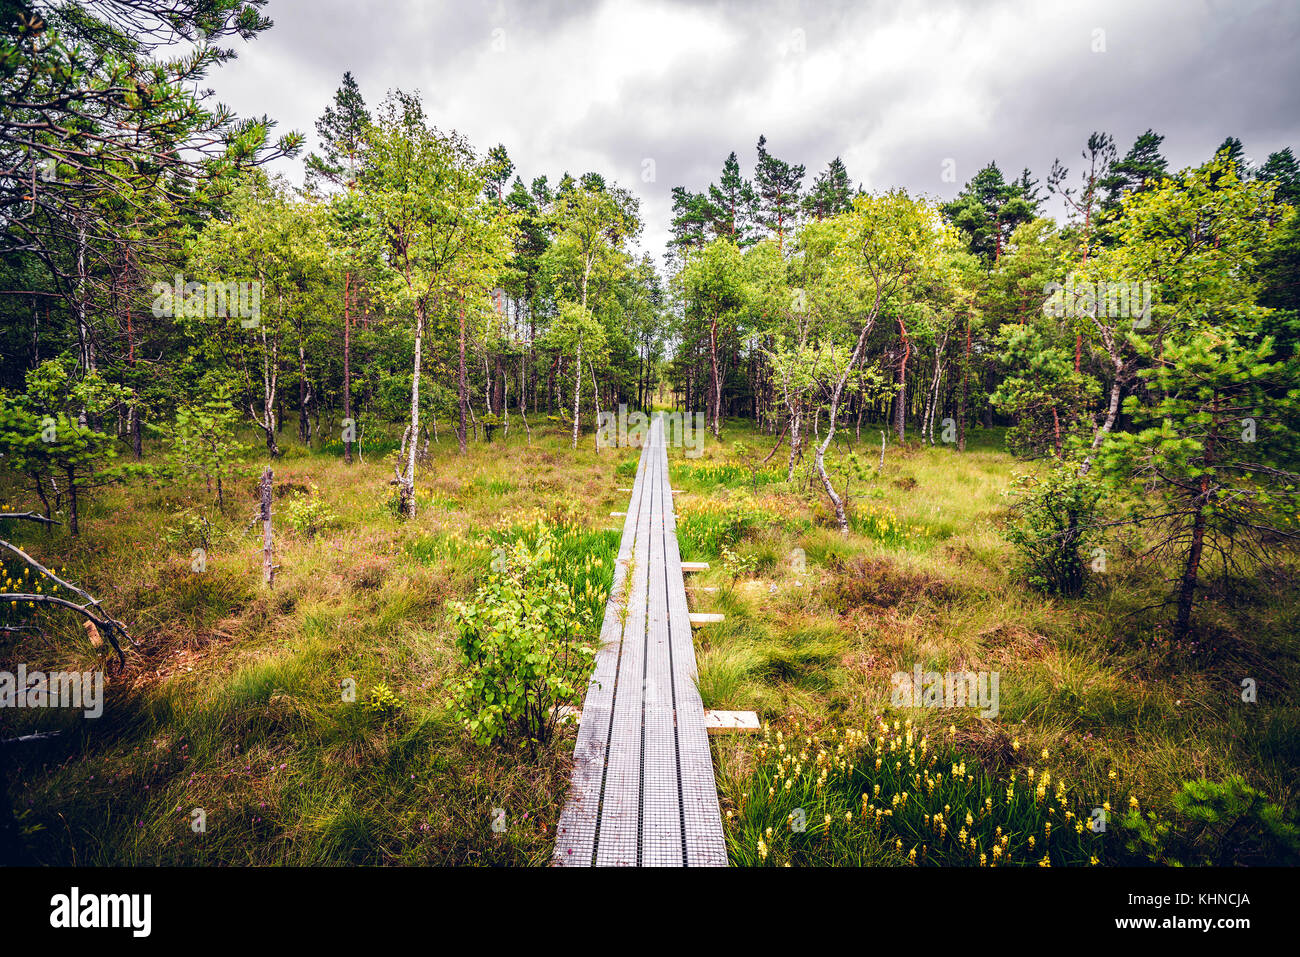 Wooden nature trail made of planks in a forest landscape with trees and grass - Stock Image